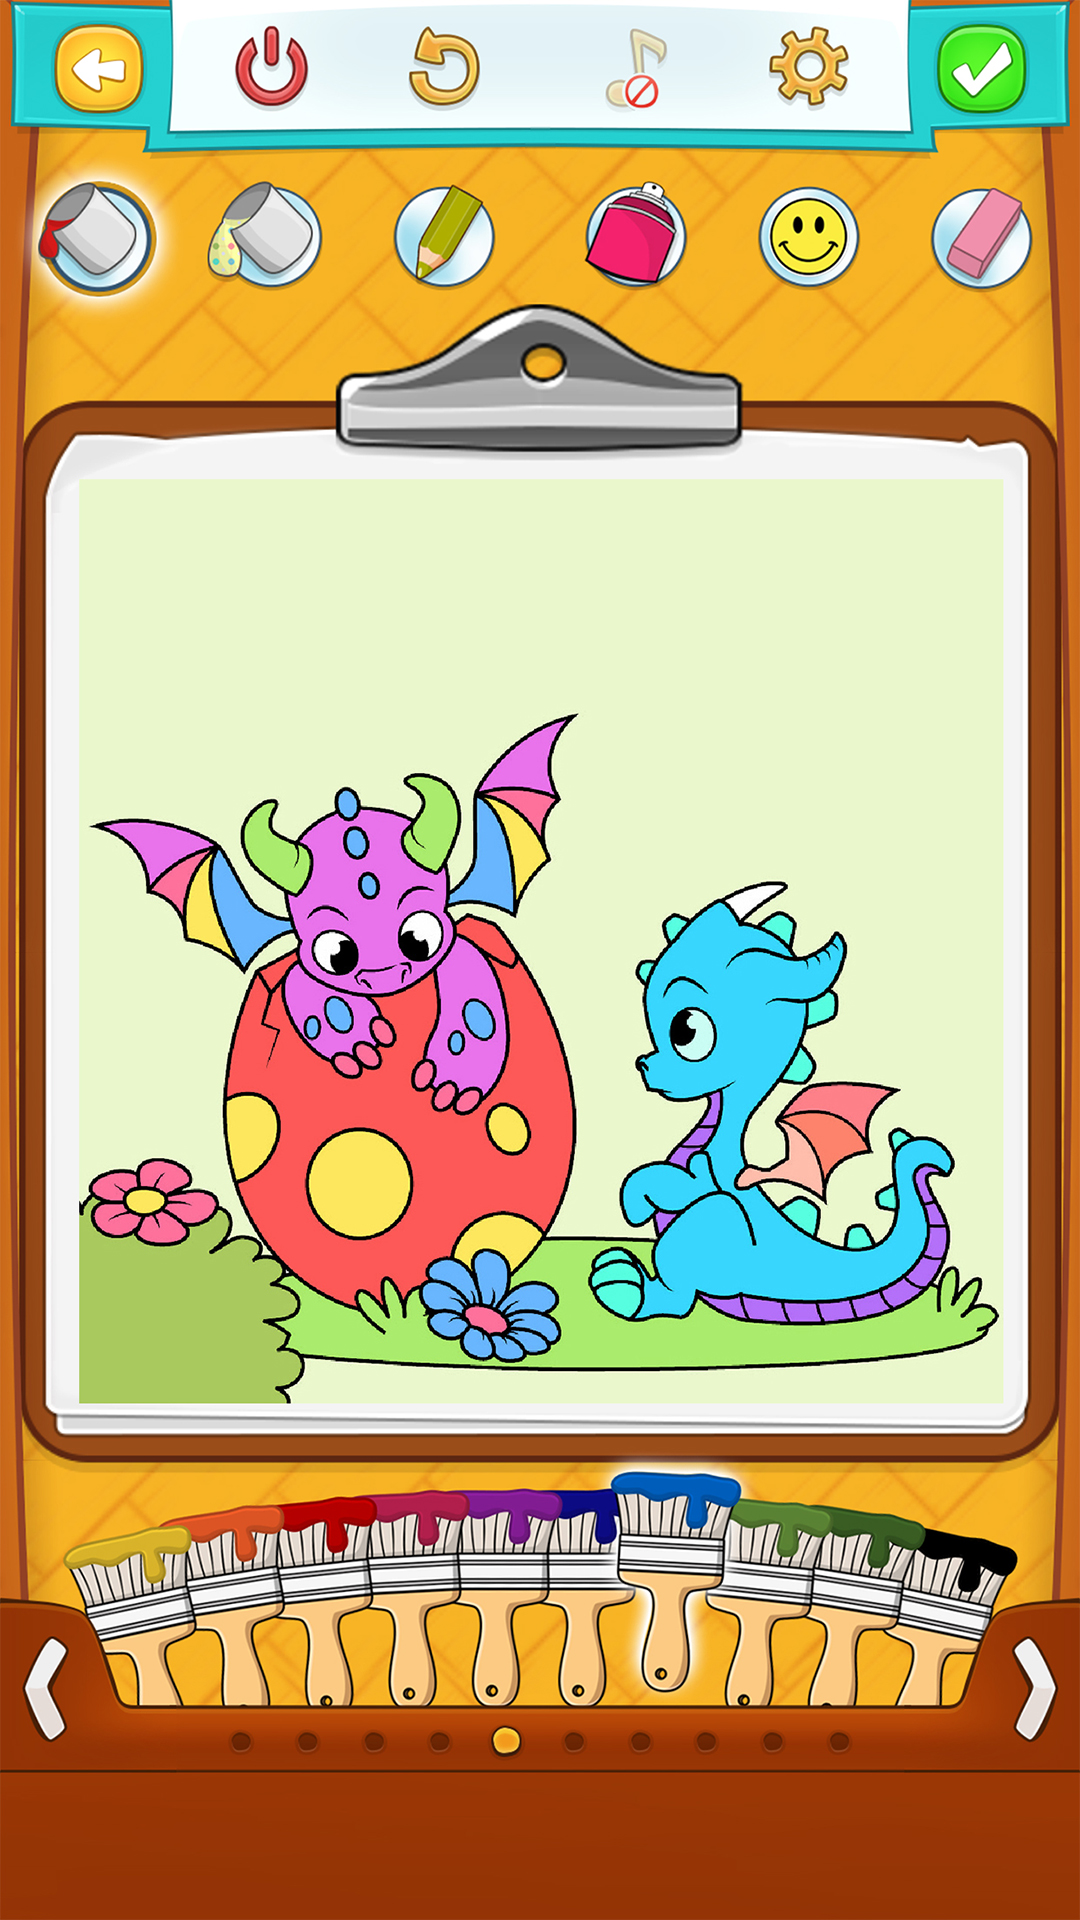 Amazon.com: Coloring Games for Kids: Appstore for Android